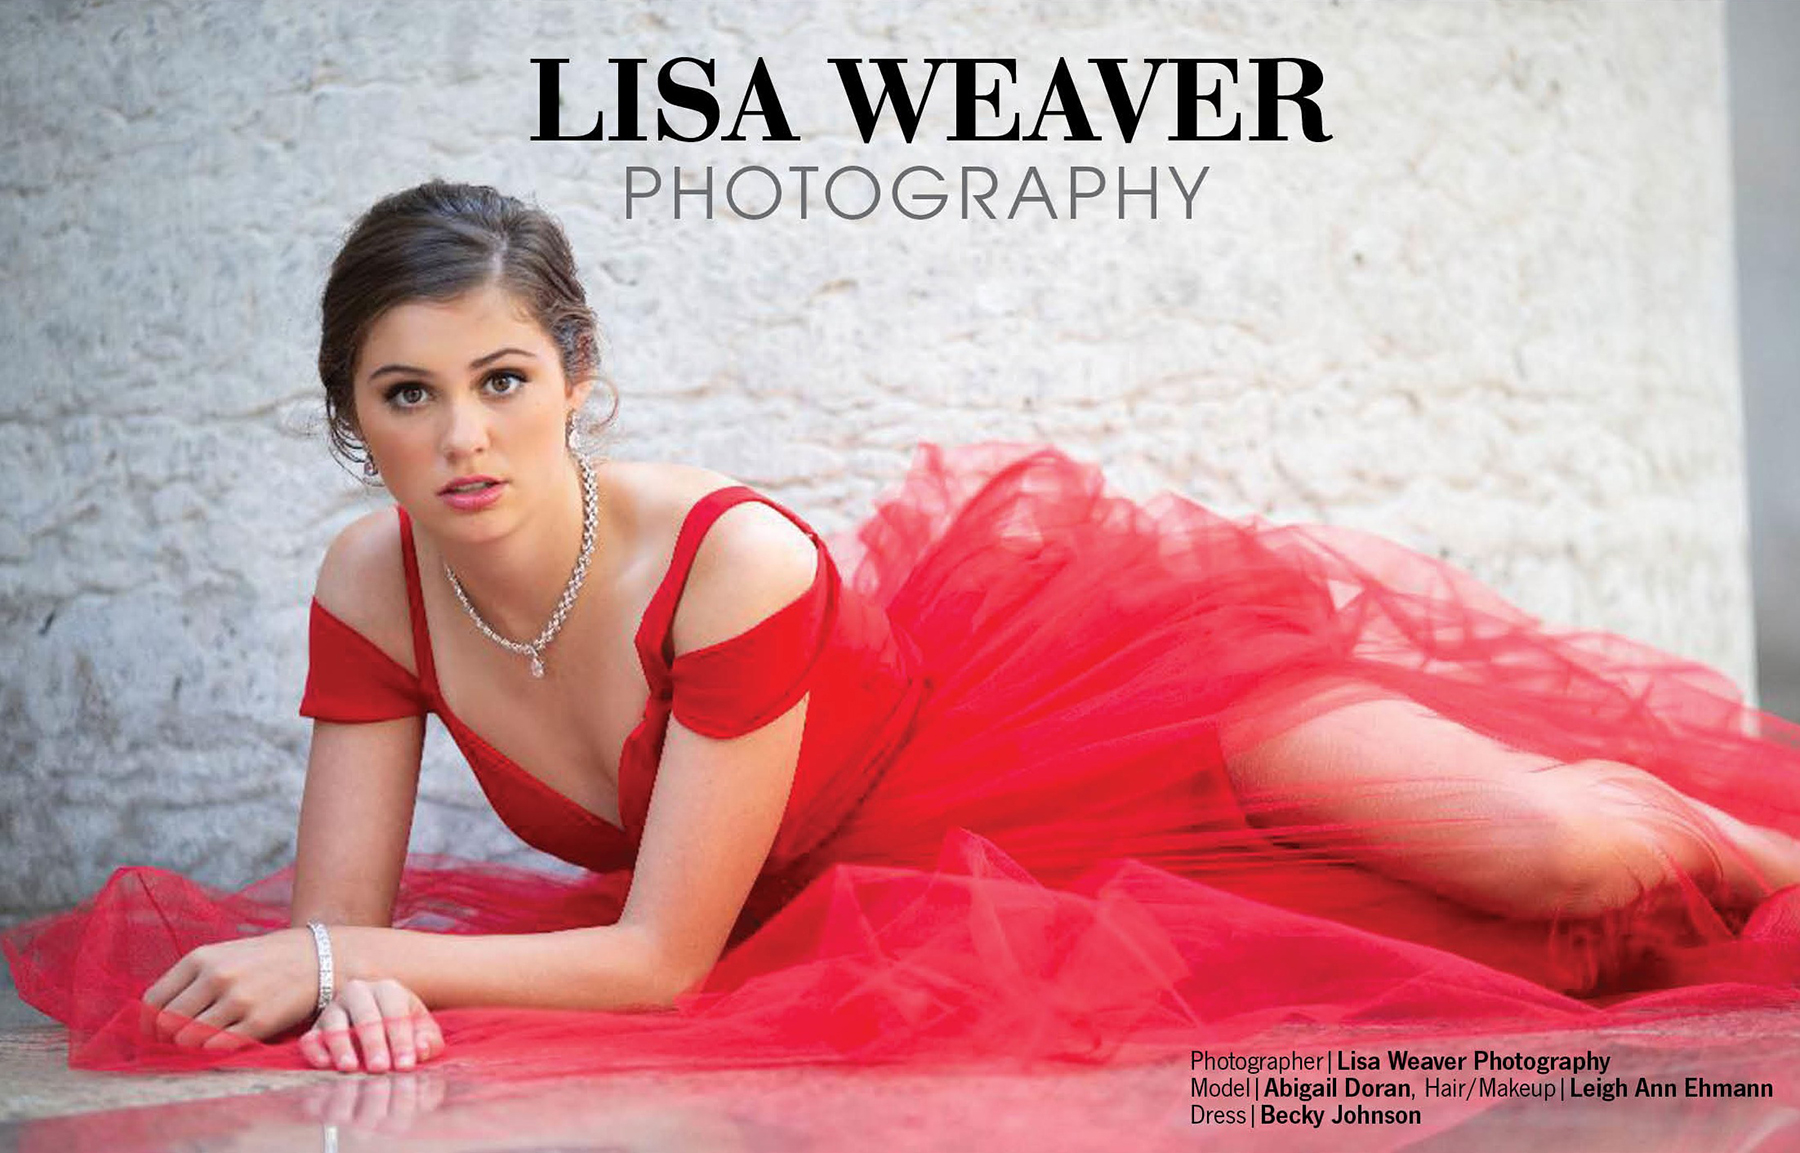 Lisa-Weaver-Photography-ad.jpg